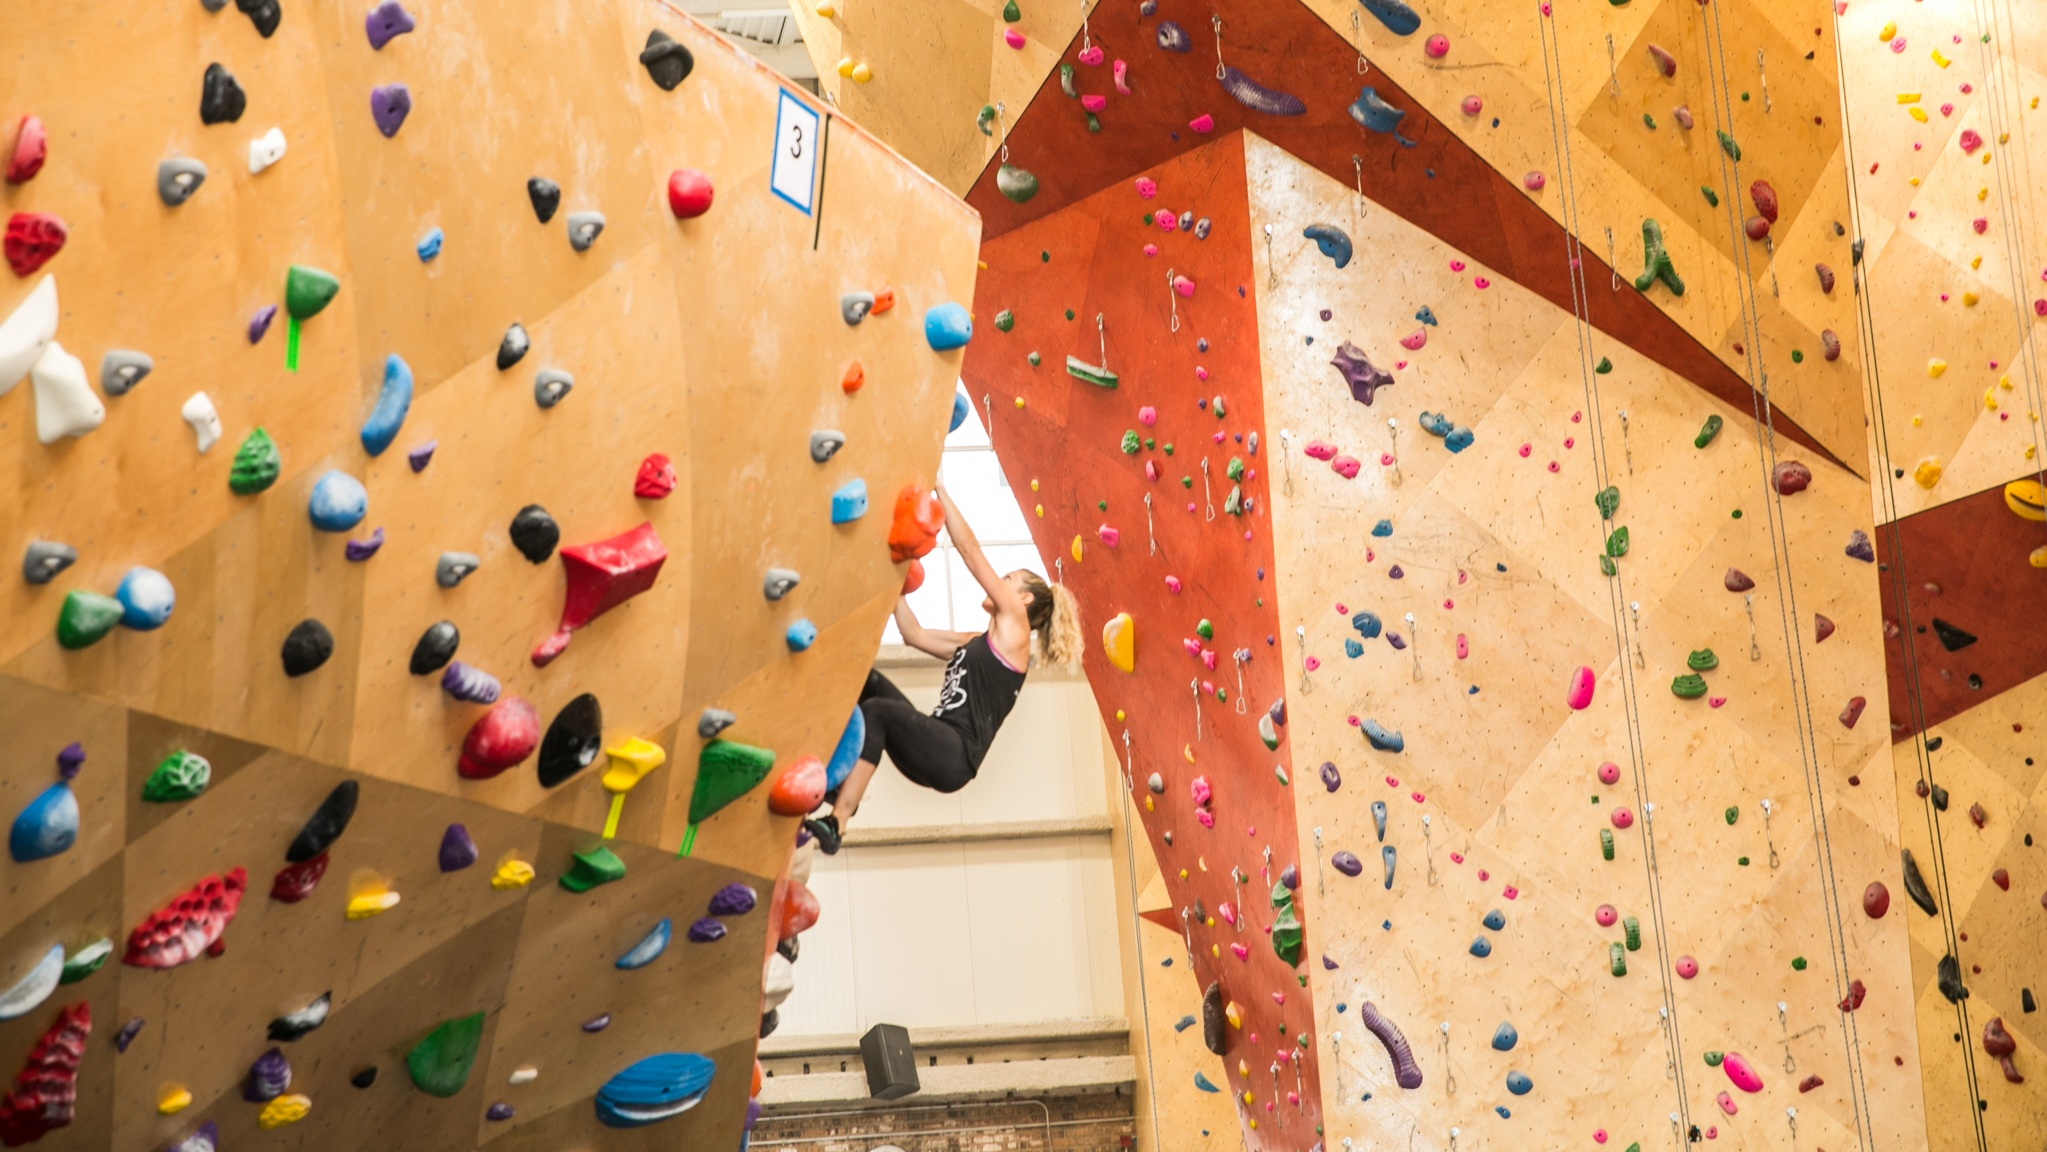 Brooklyn Boulders in the West Loop hosts bouldering and rope climbing experiences.